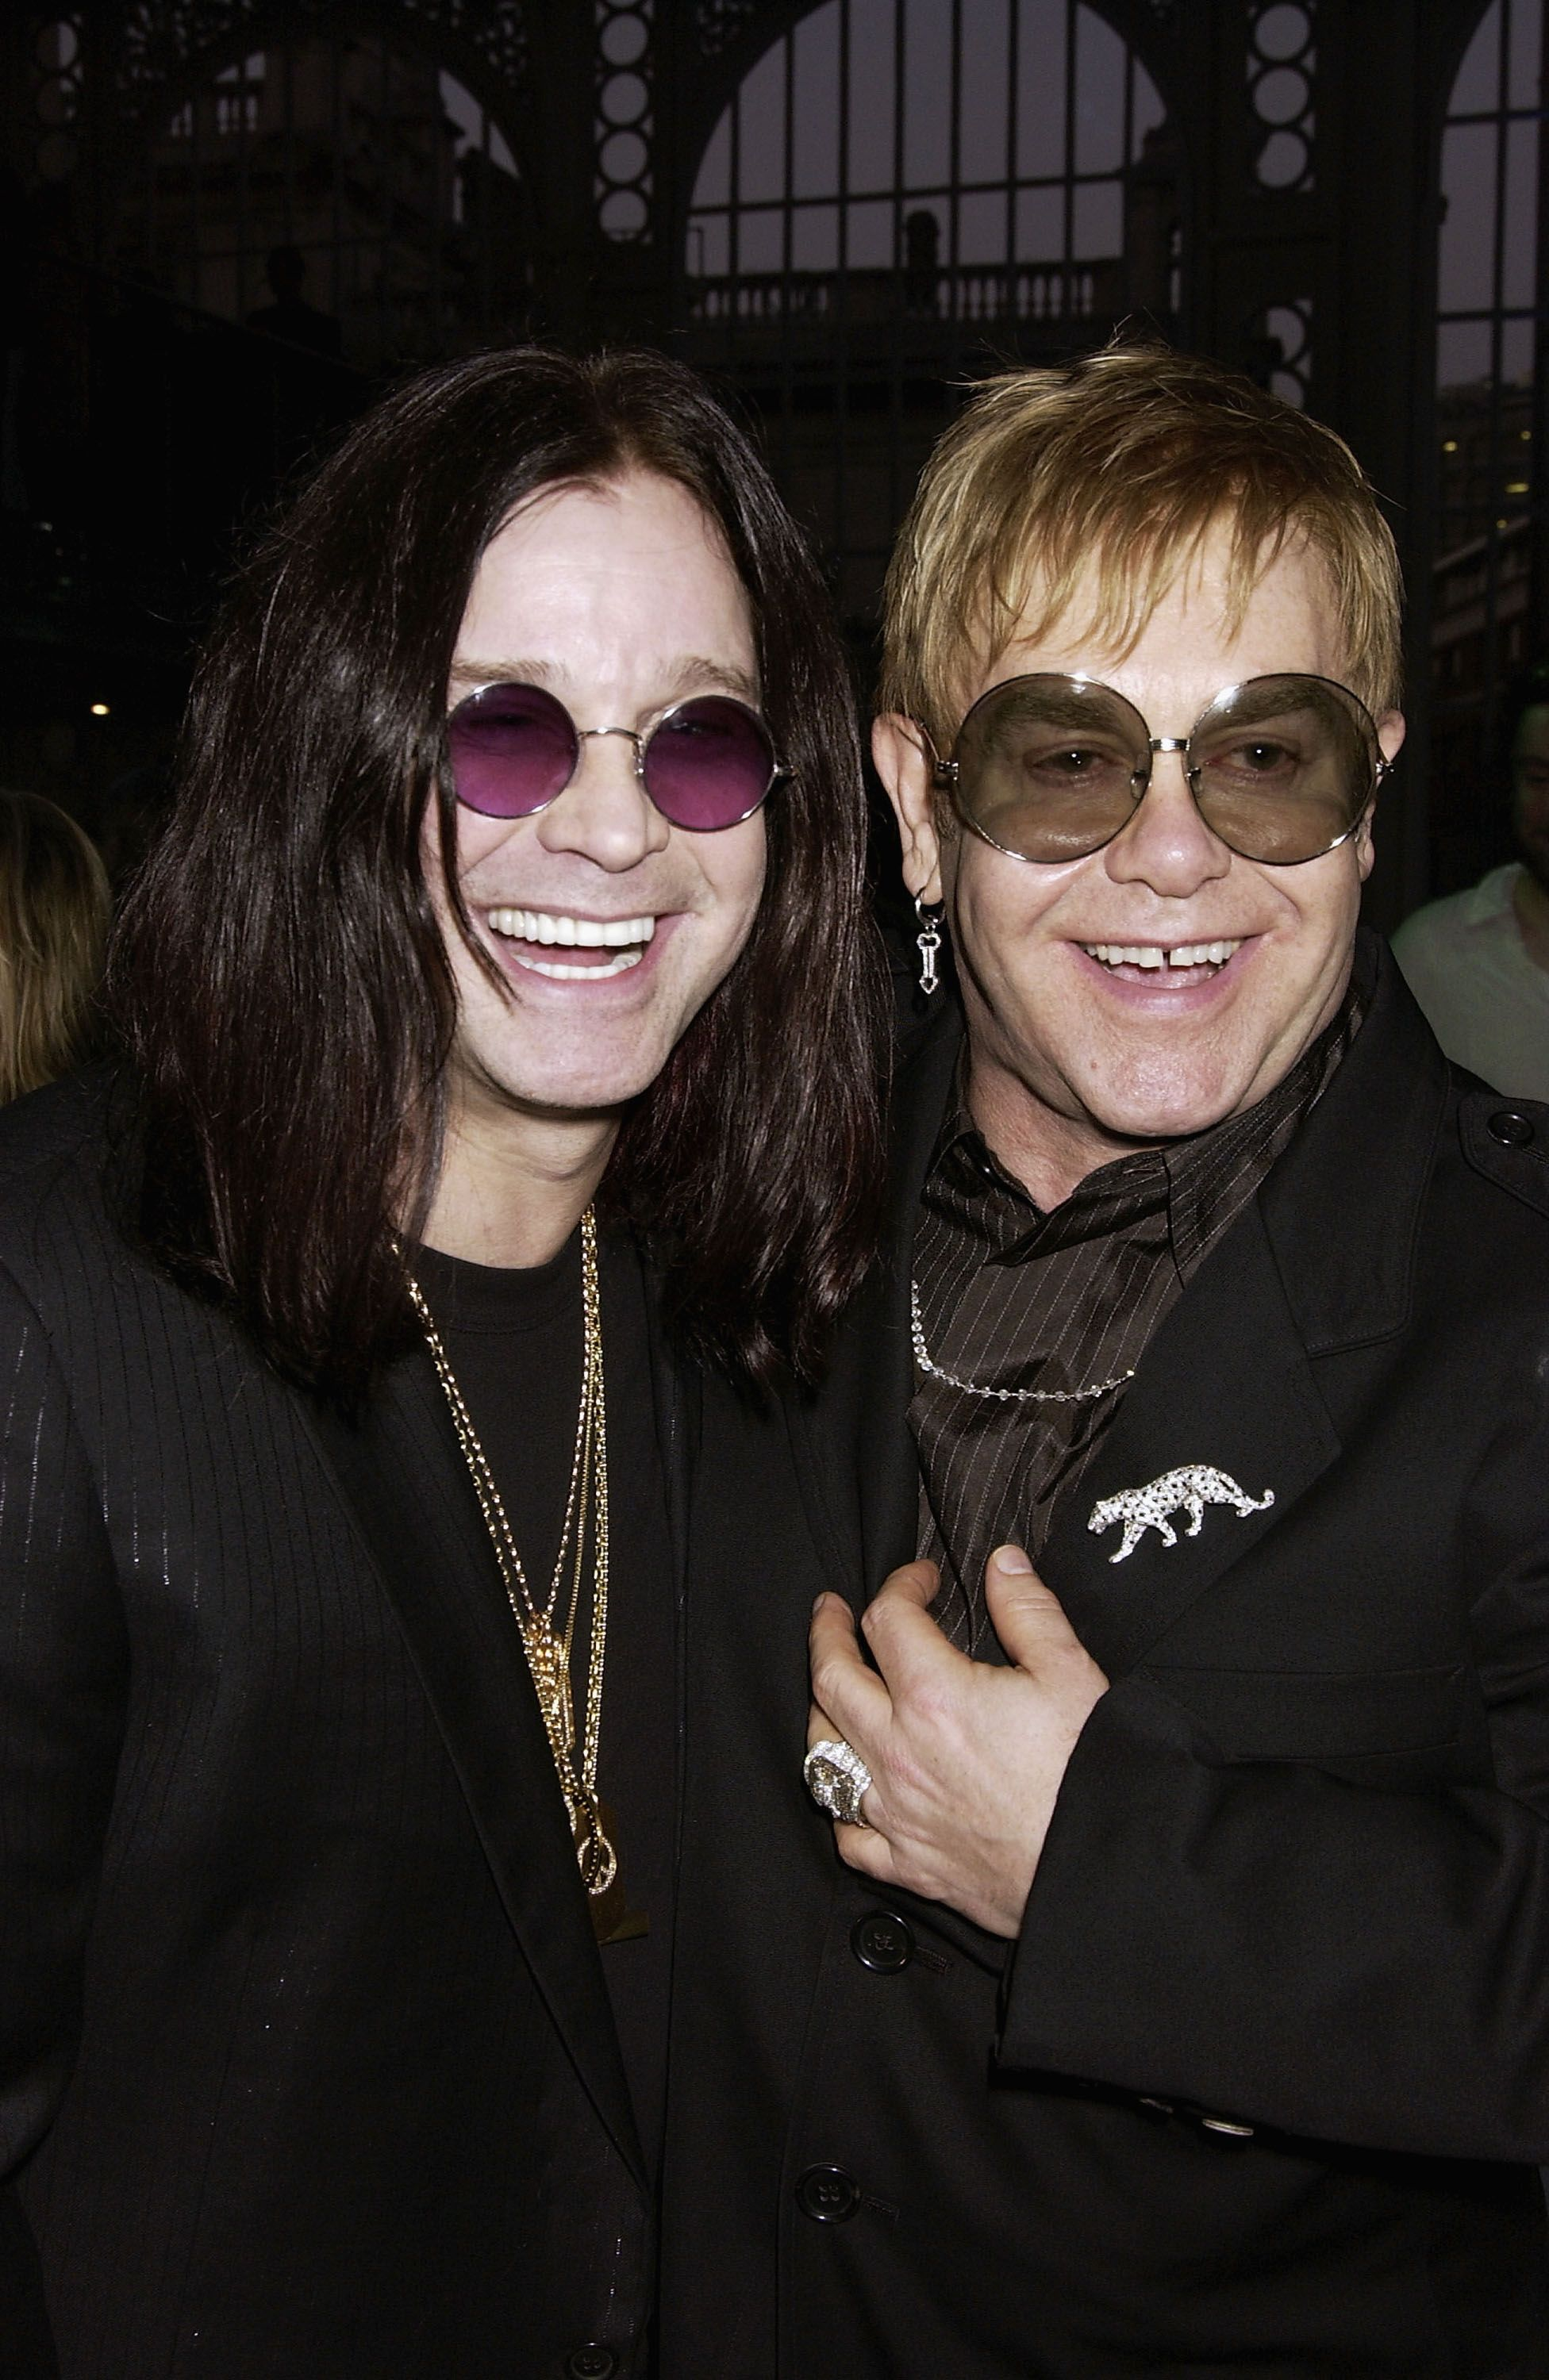 """Ozzy Osbourne and Sir Elton John at the  """"GQ Men Of The Year Awards"""" afterparty on September 7, 2004, in London 